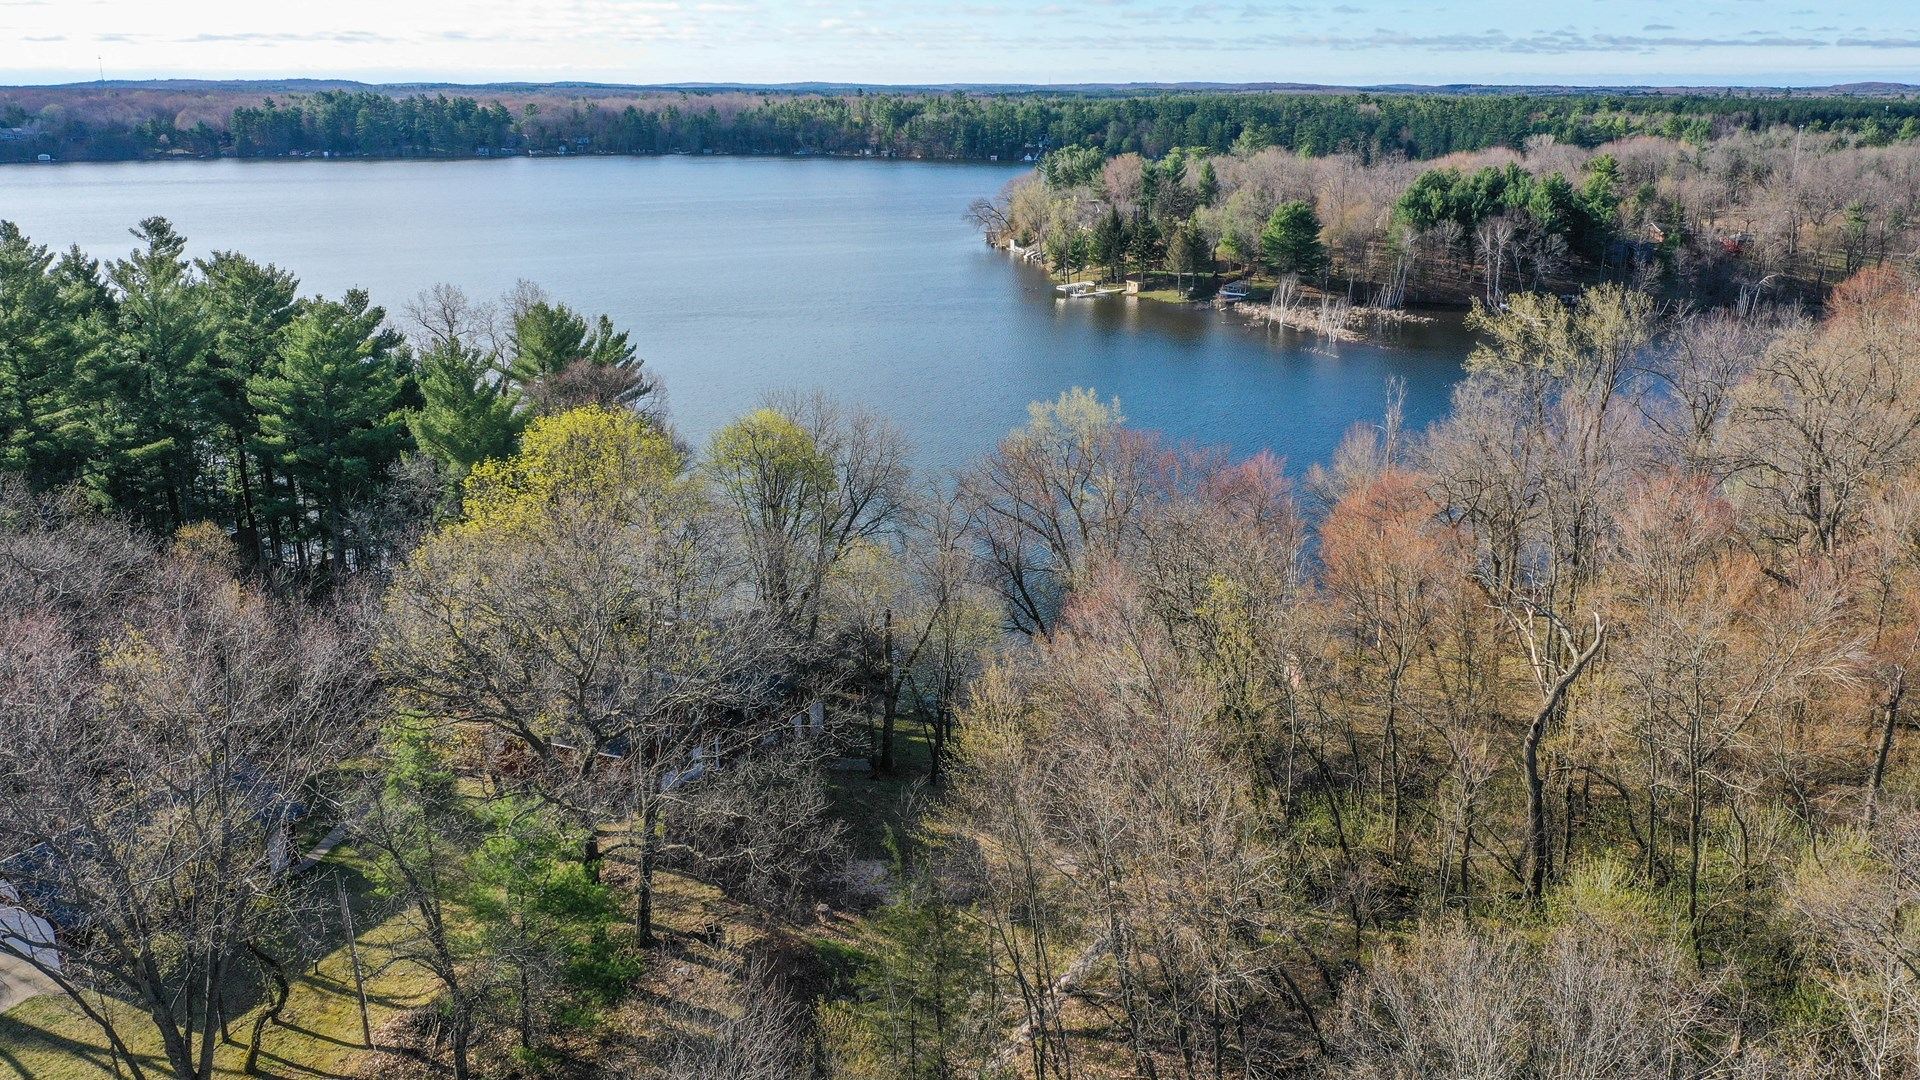 Land for sale on Long Lake, Waushara County WI